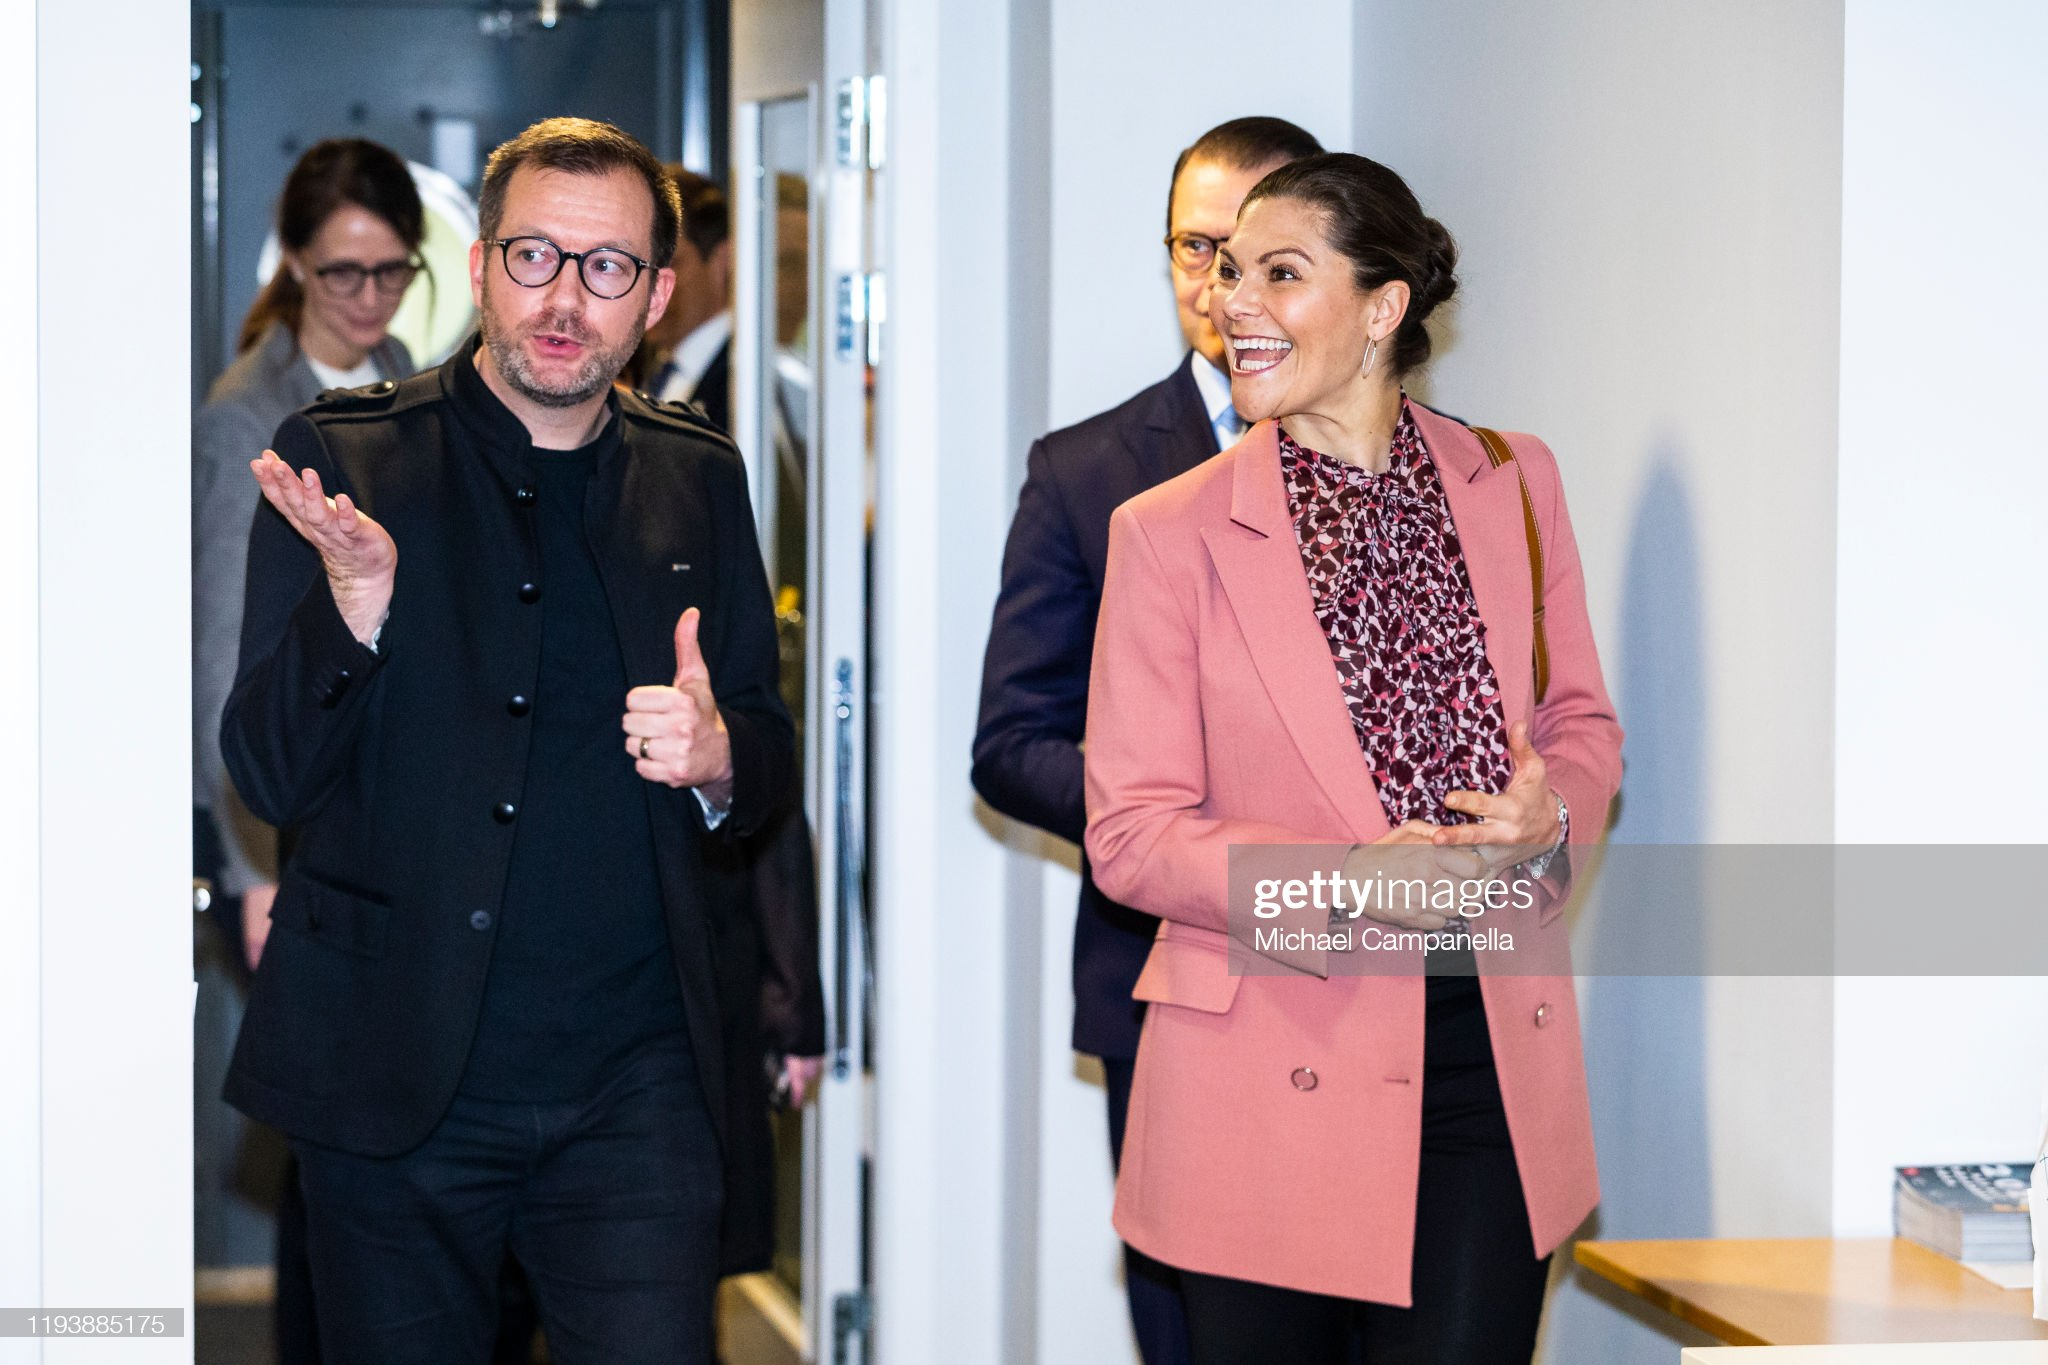 crown-princess-victoria-of-sweden-visits-the-swedish-federation-for-picture-id1193885175